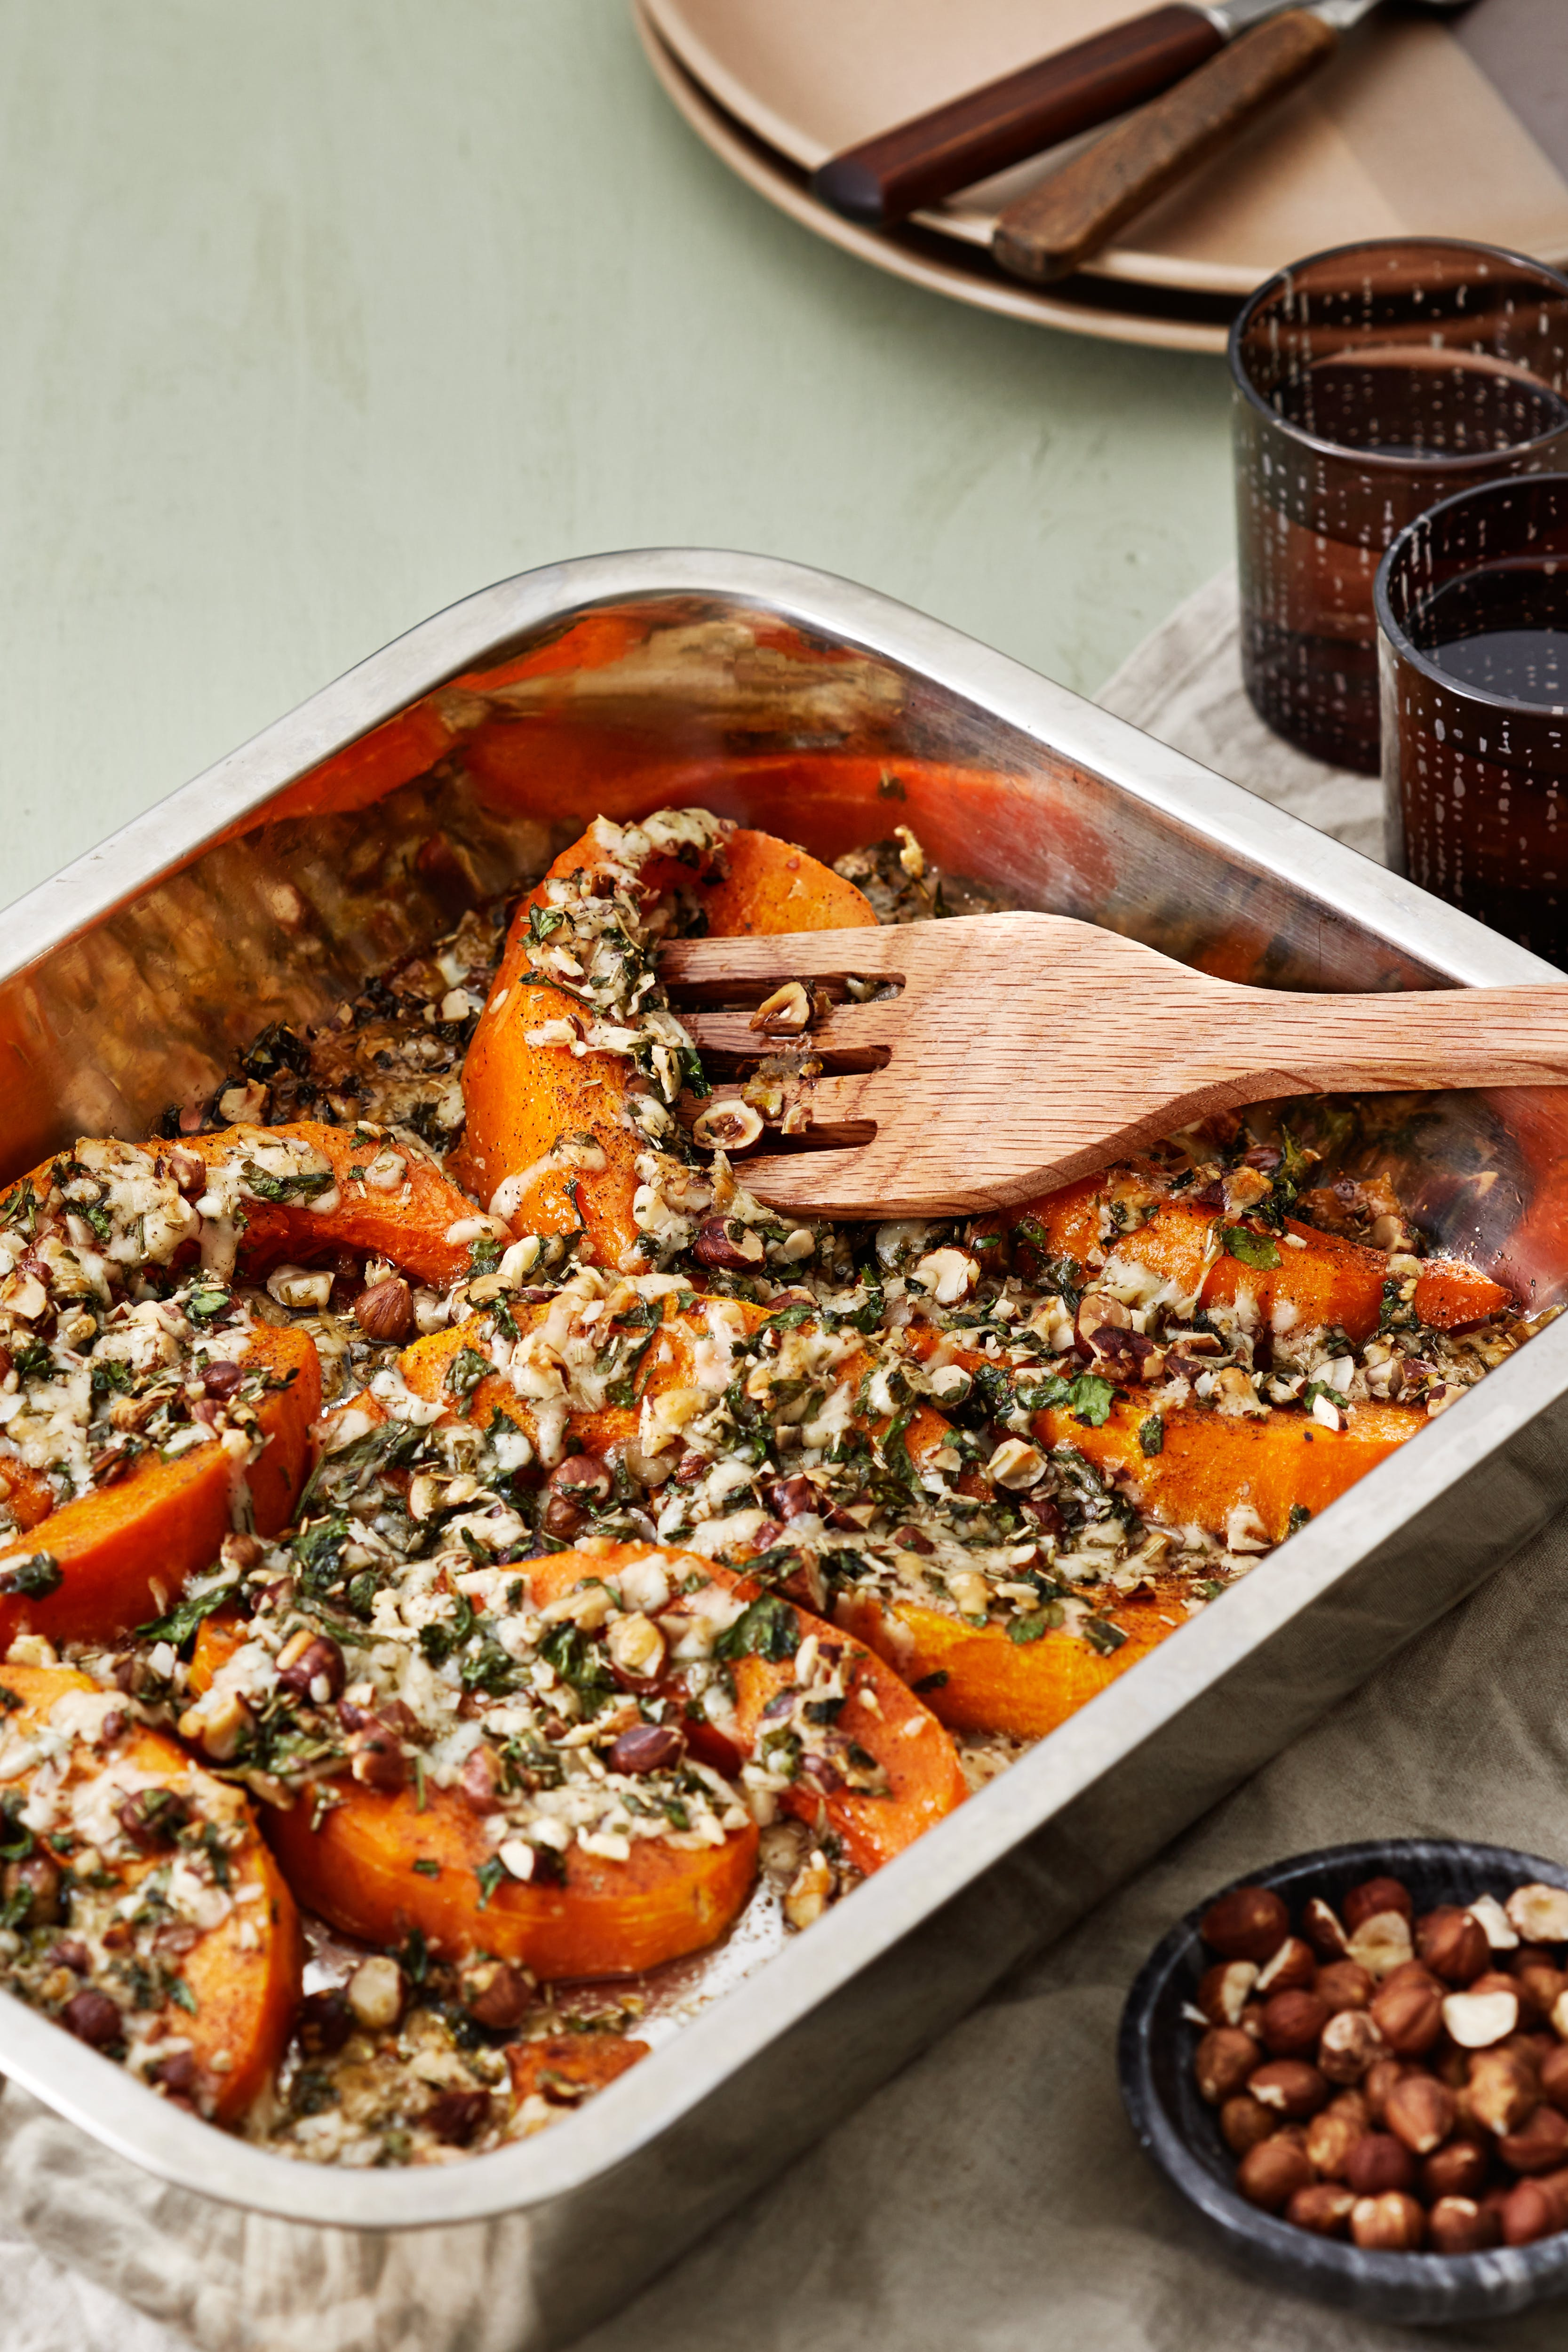 Roasted pumpkin with nuts and manchego cheese